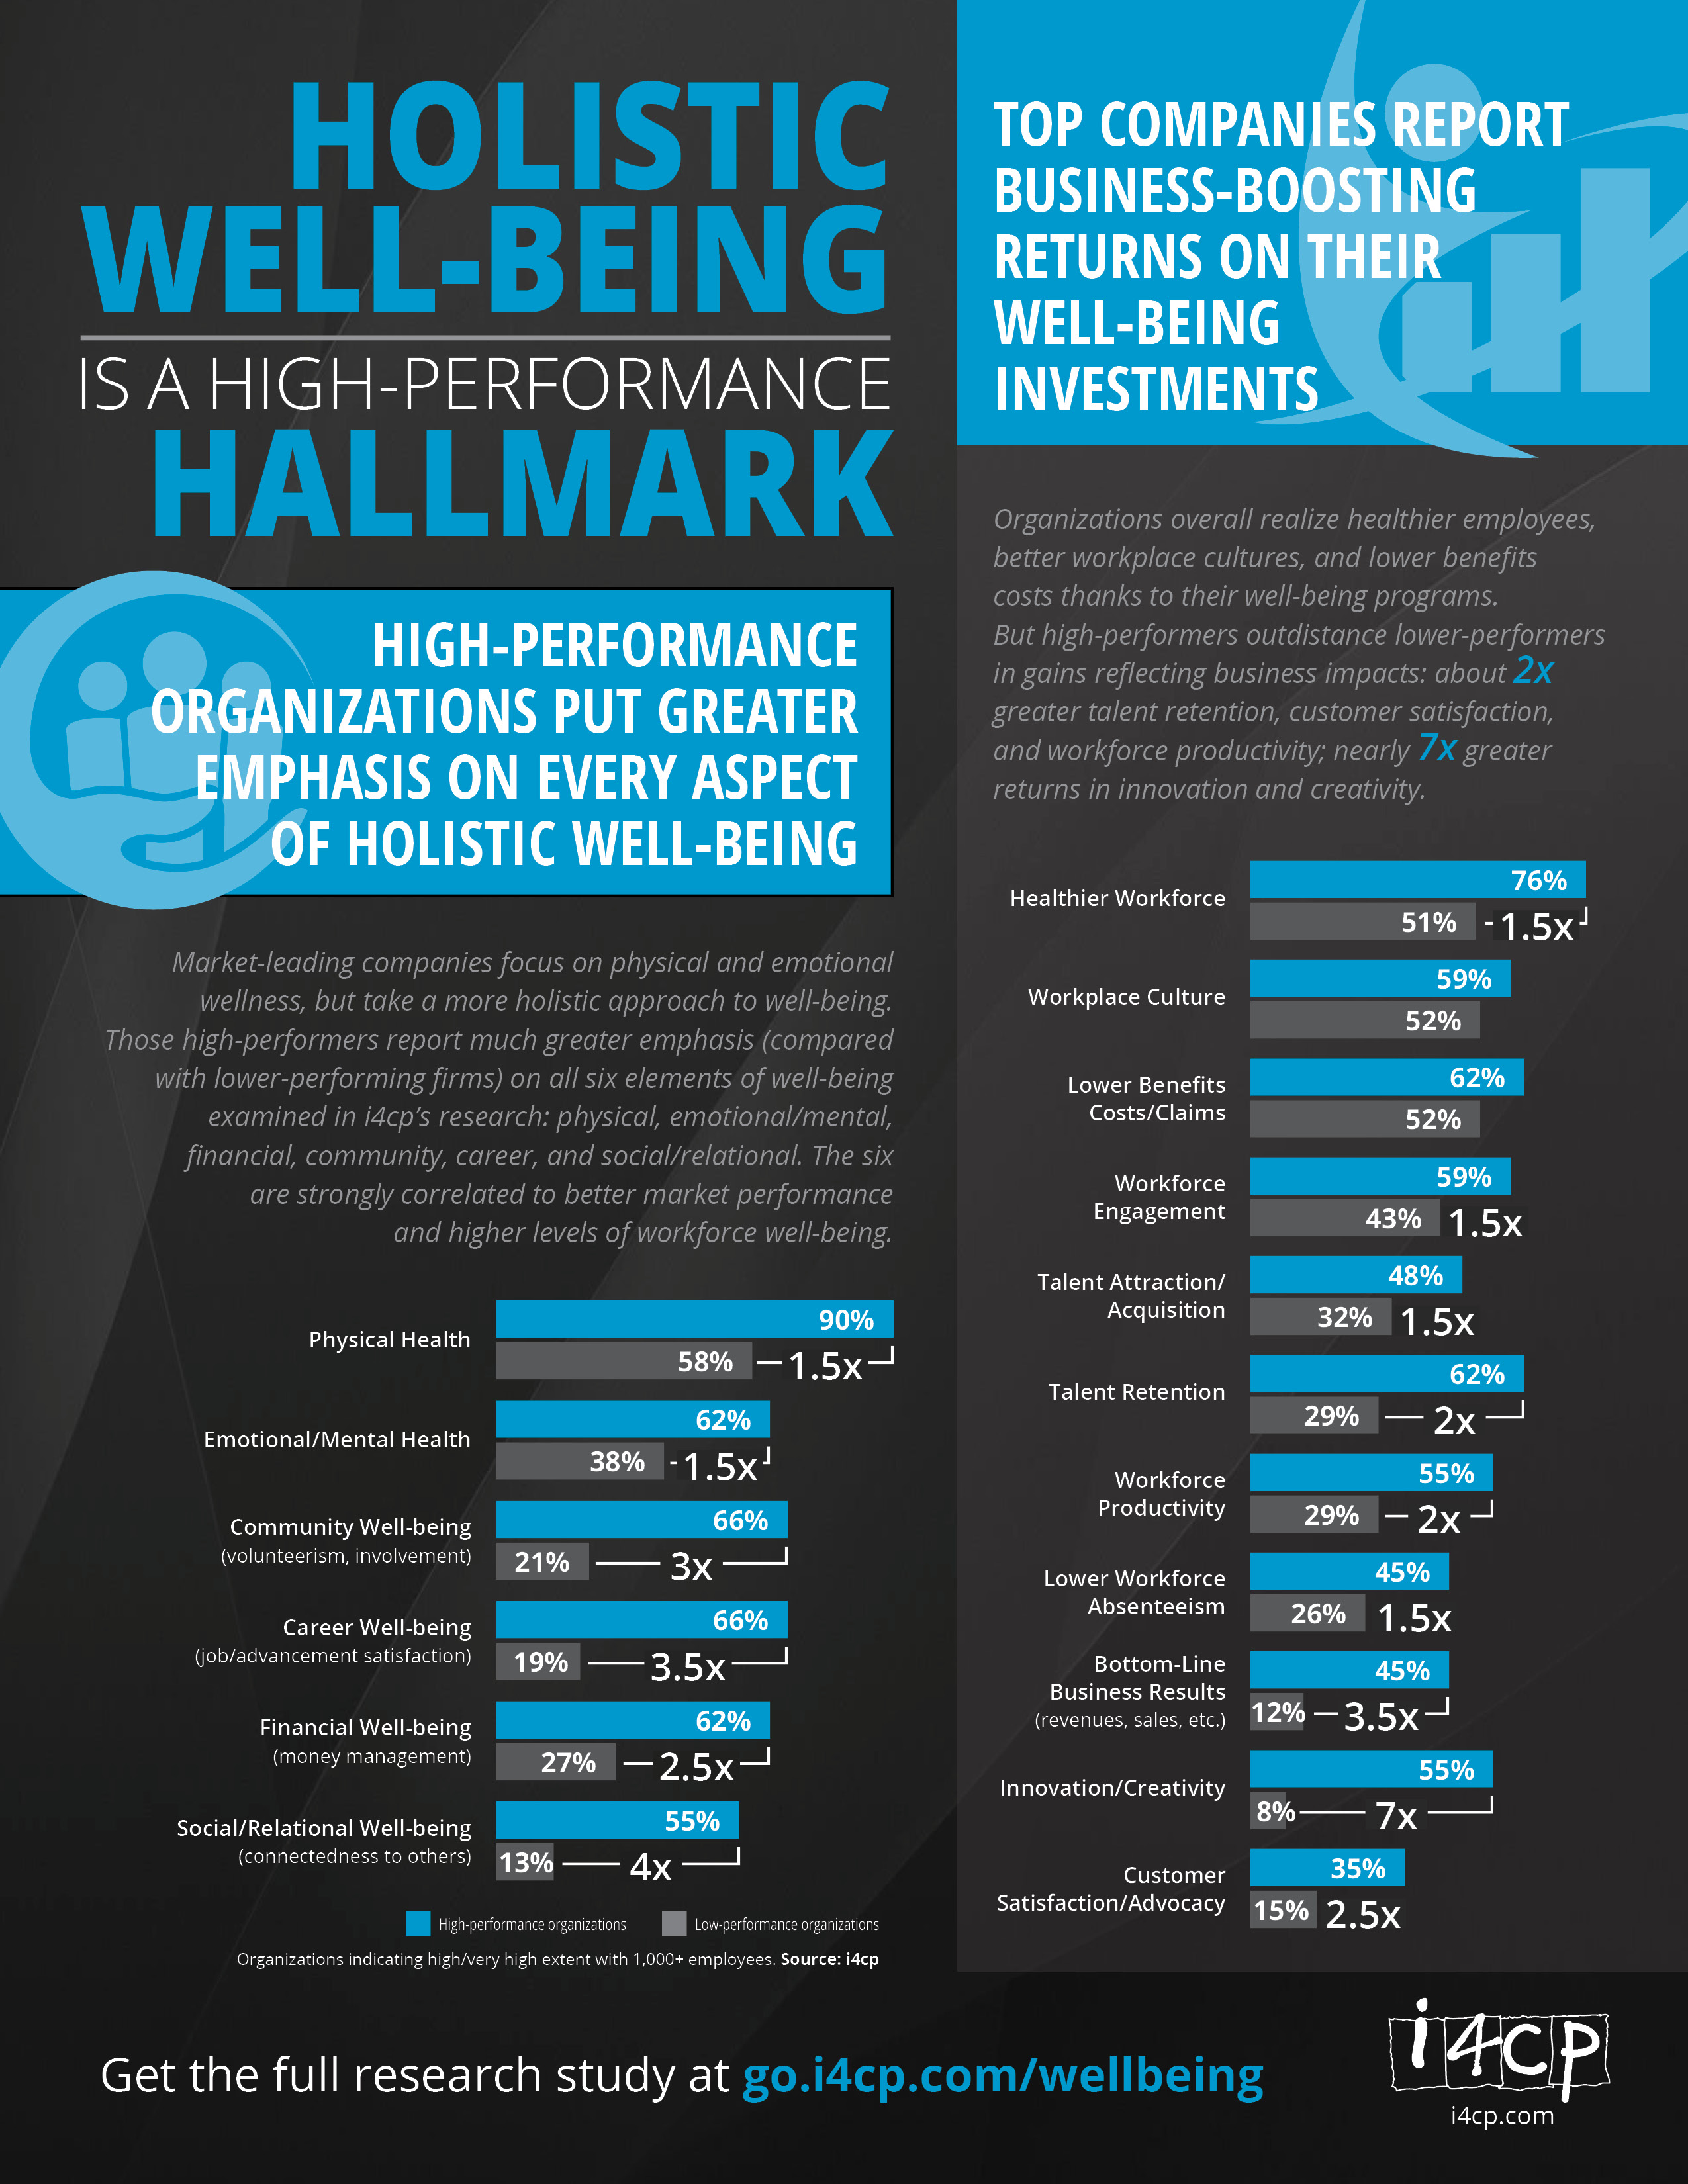 Holistic Well-Being is a High-Performance Hallmark